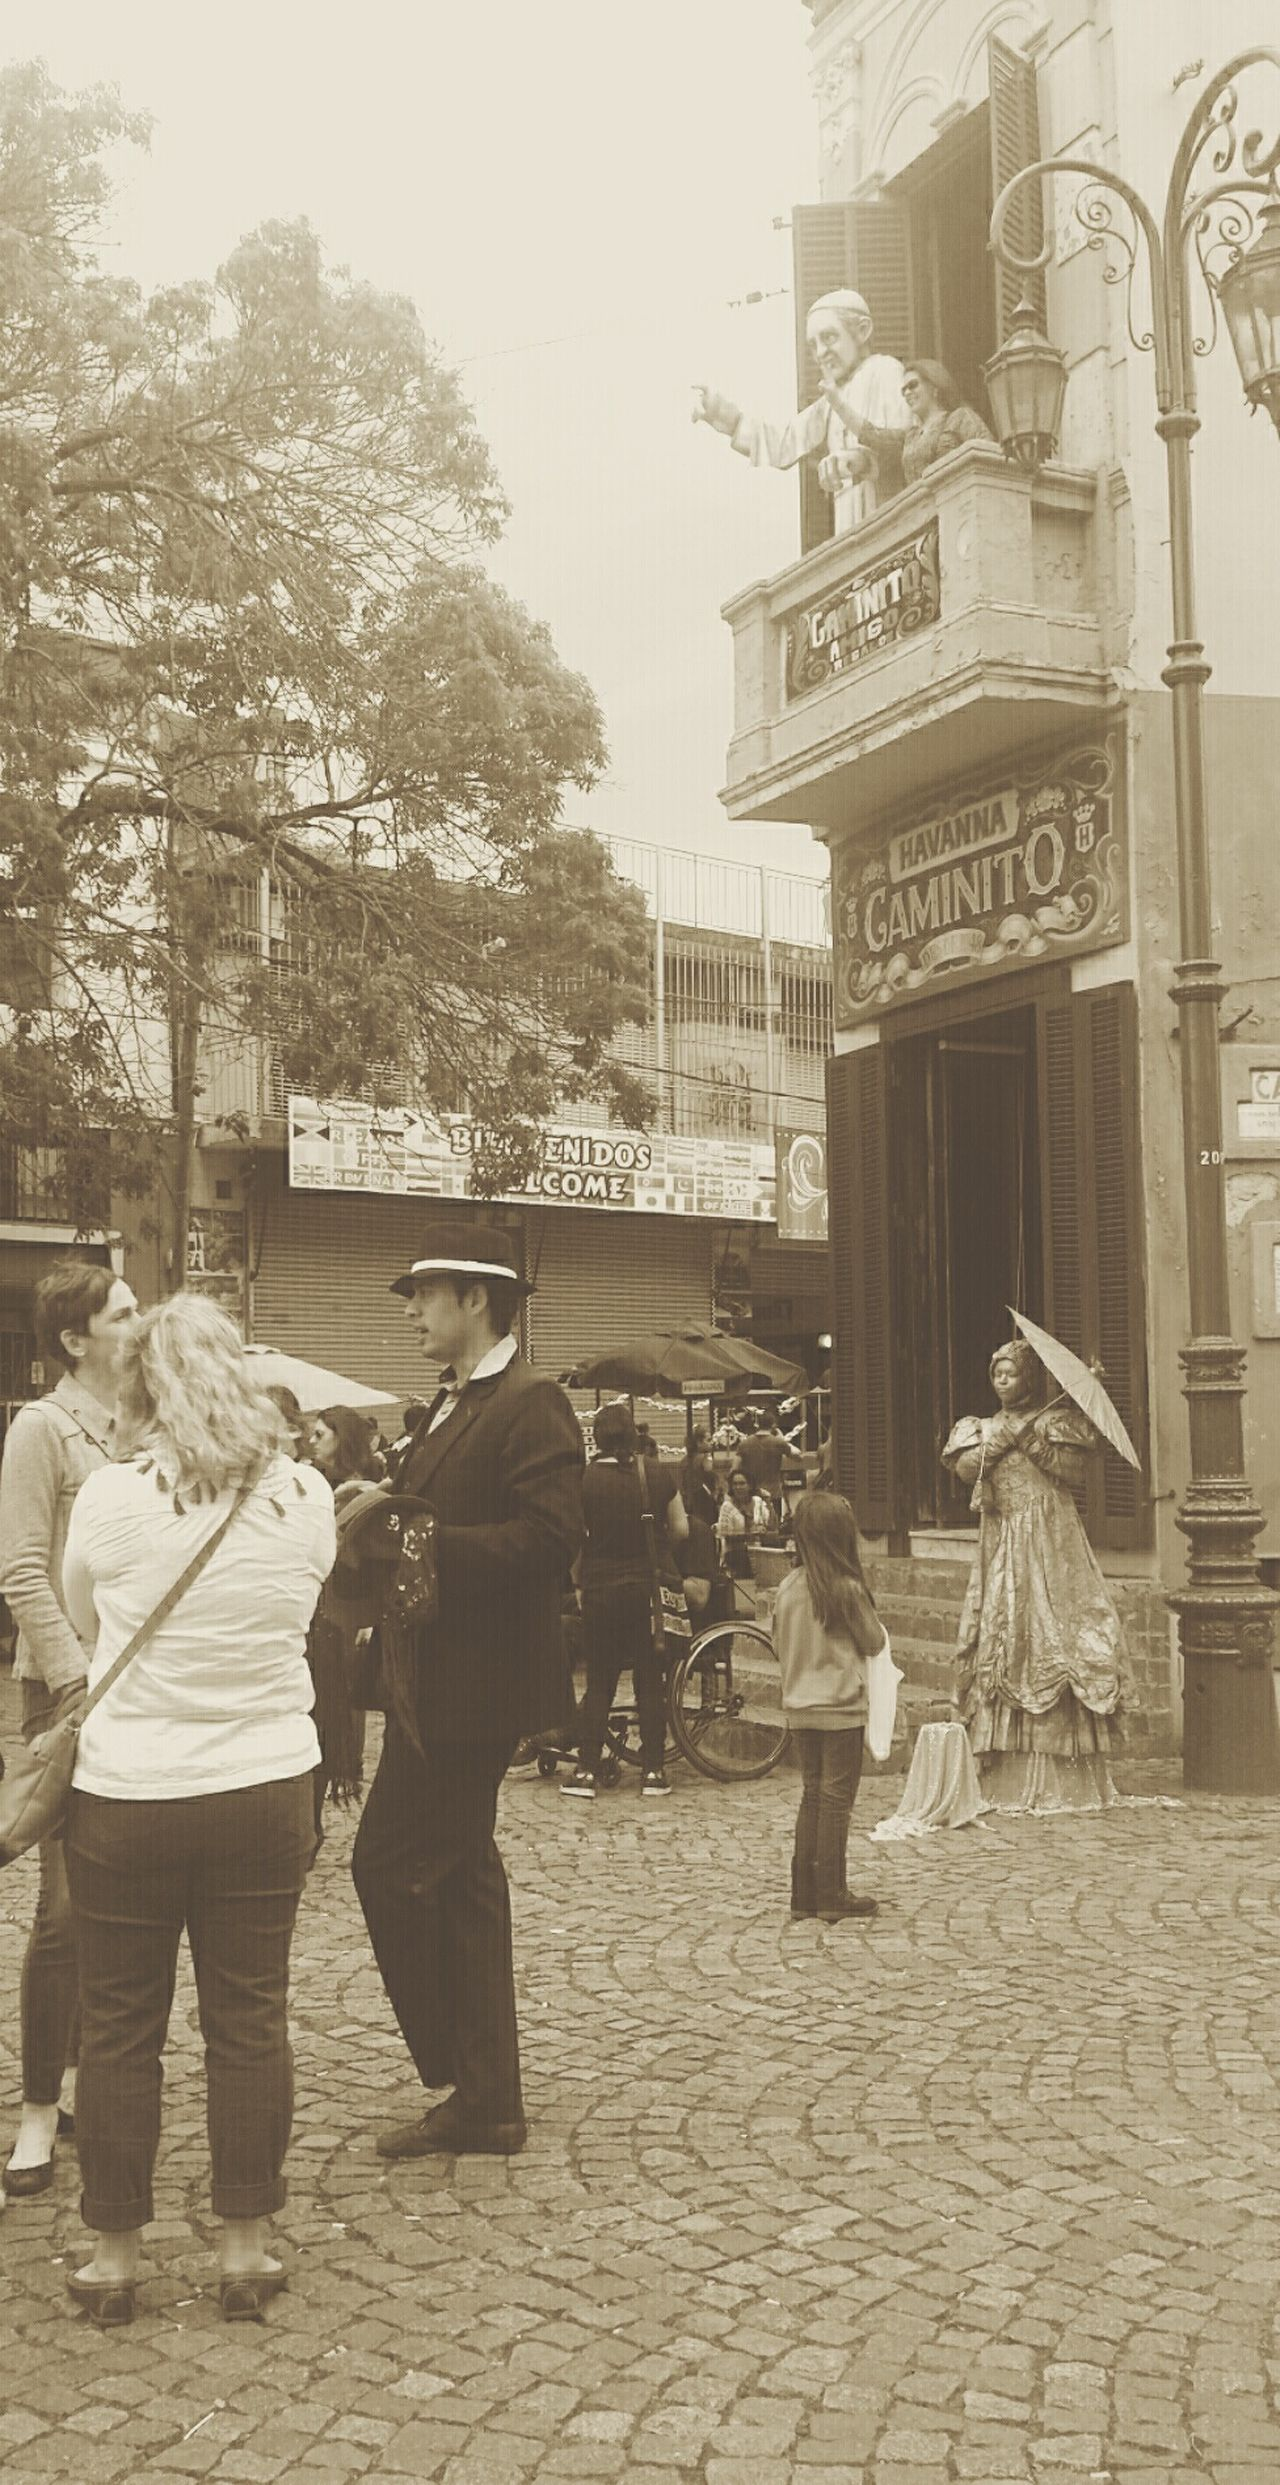 Mi Buenos Aires Querido Caminito Buenosaires EyeEm Buenos Aires Colonial Style Argentina Walking Around Taking Photos Looking To The Other Side